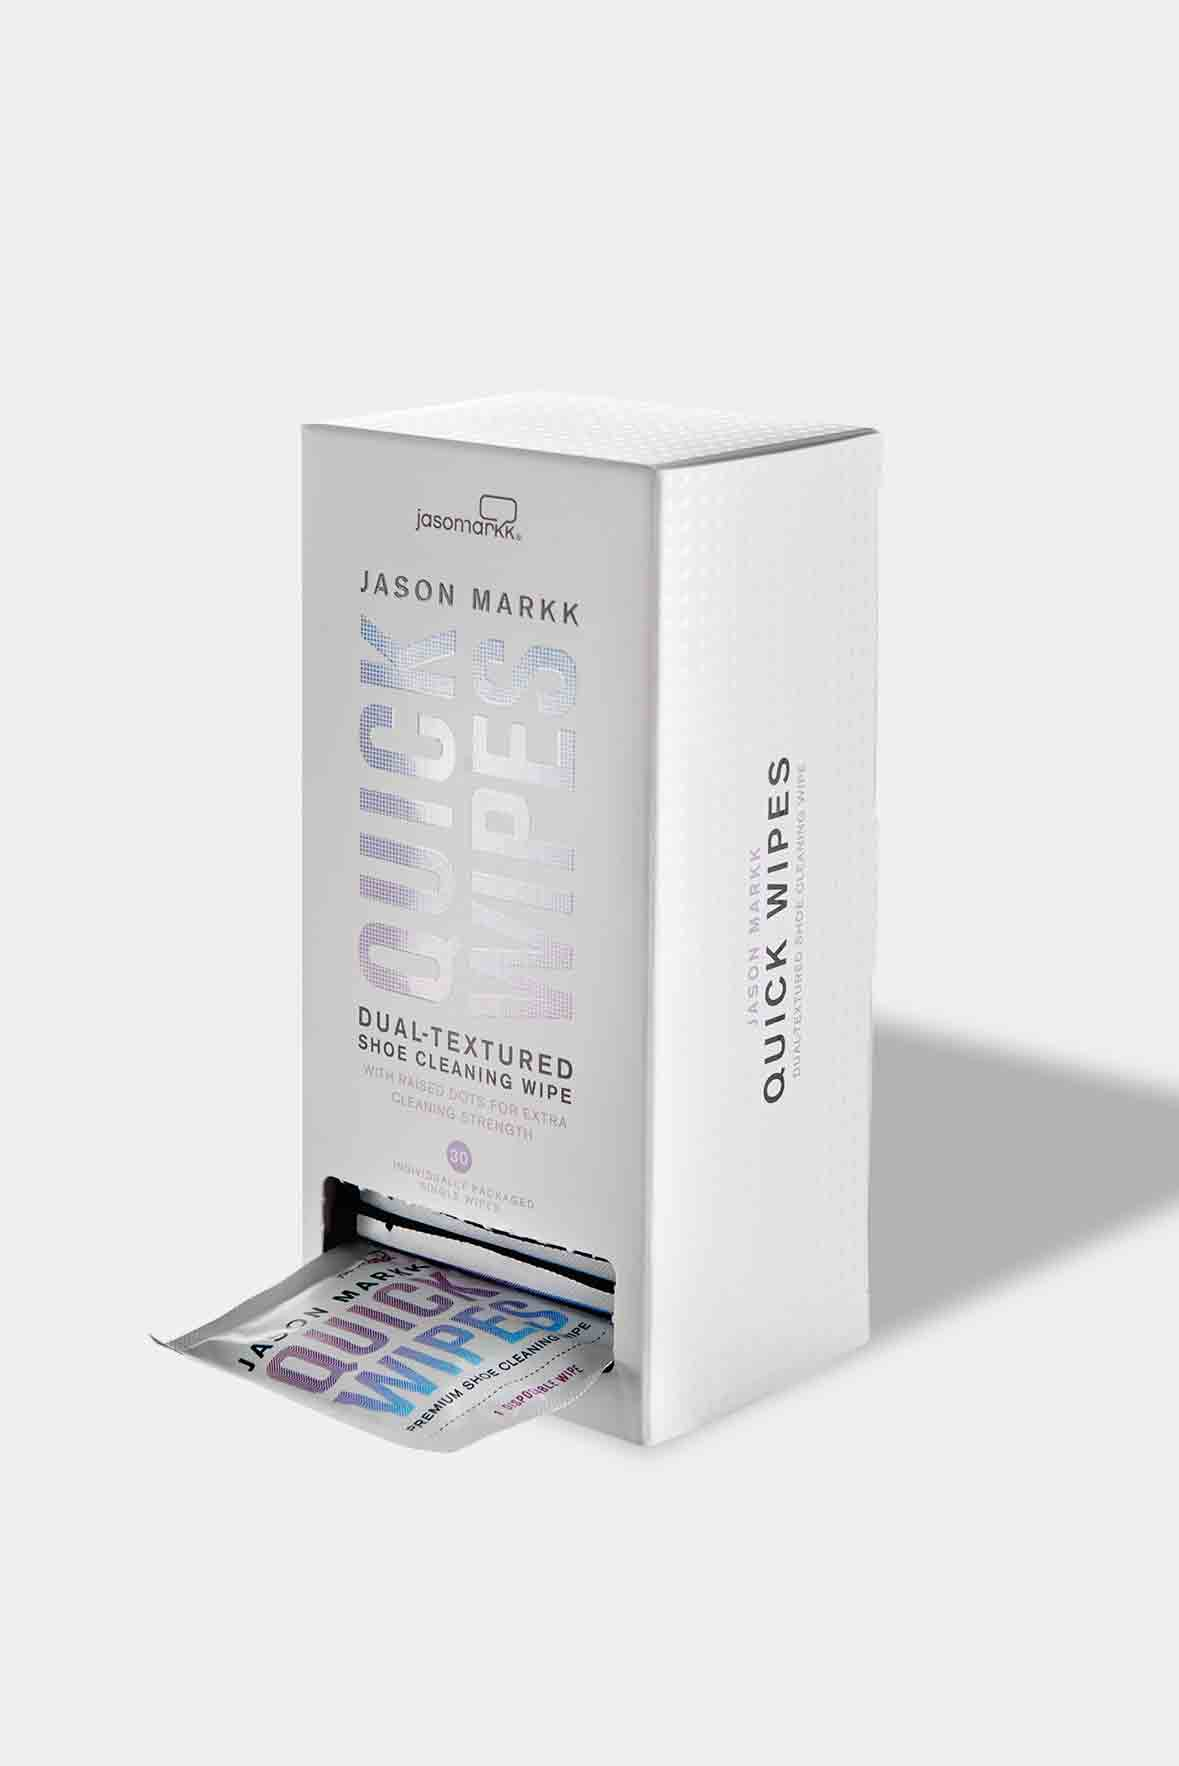 Jason Markk Quick Wipes - 30 Pack Box. Perfect travel sneaker cleaning wipes.